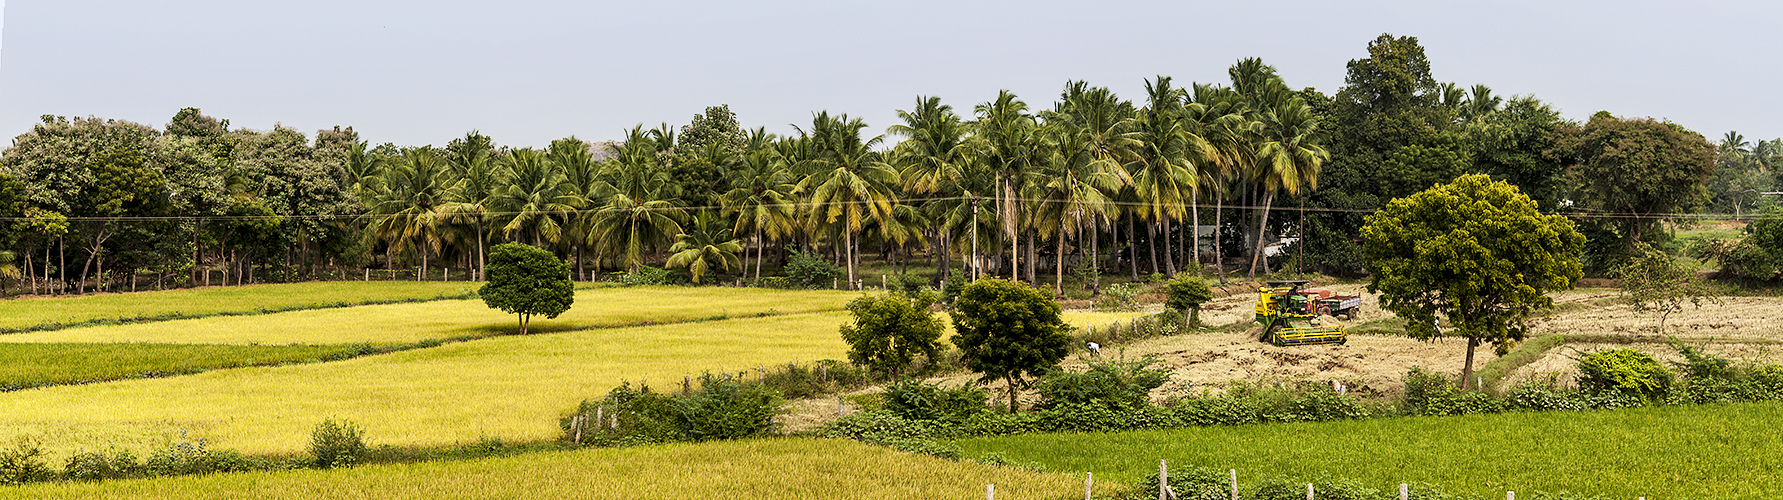 Harvesting and Ripening Fields-Madurai